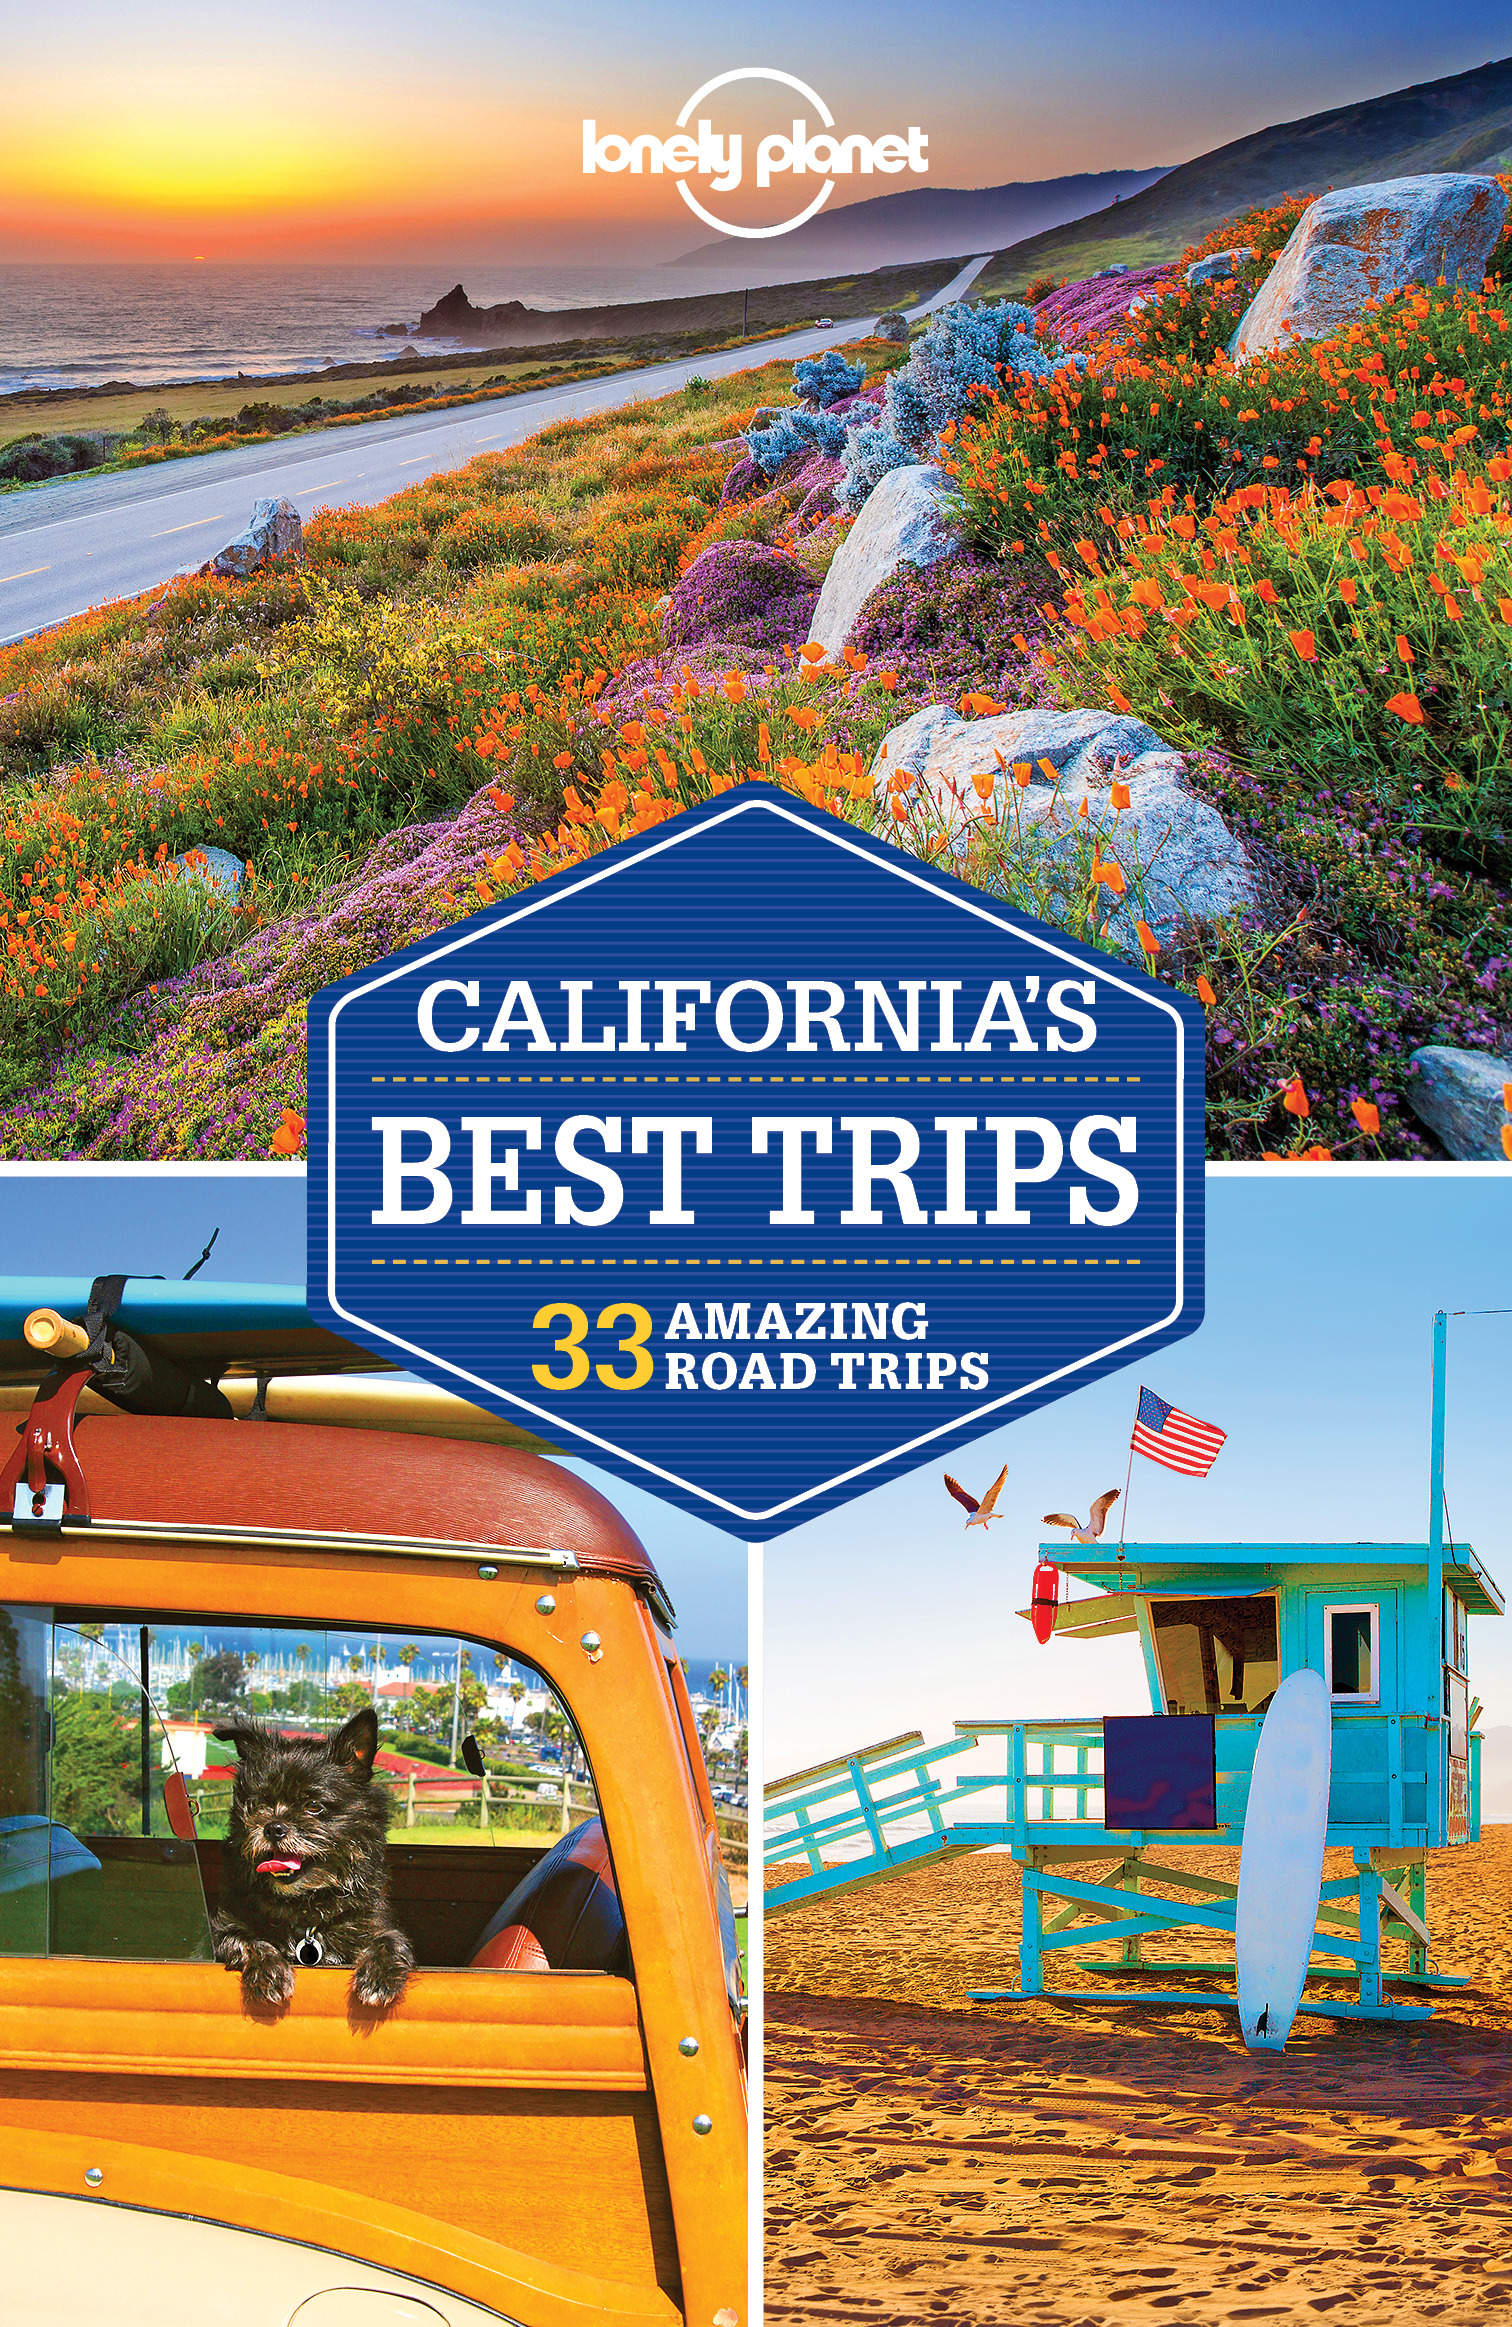 Planet, Lonely - Lonely Planet California's Best Trips, ebook